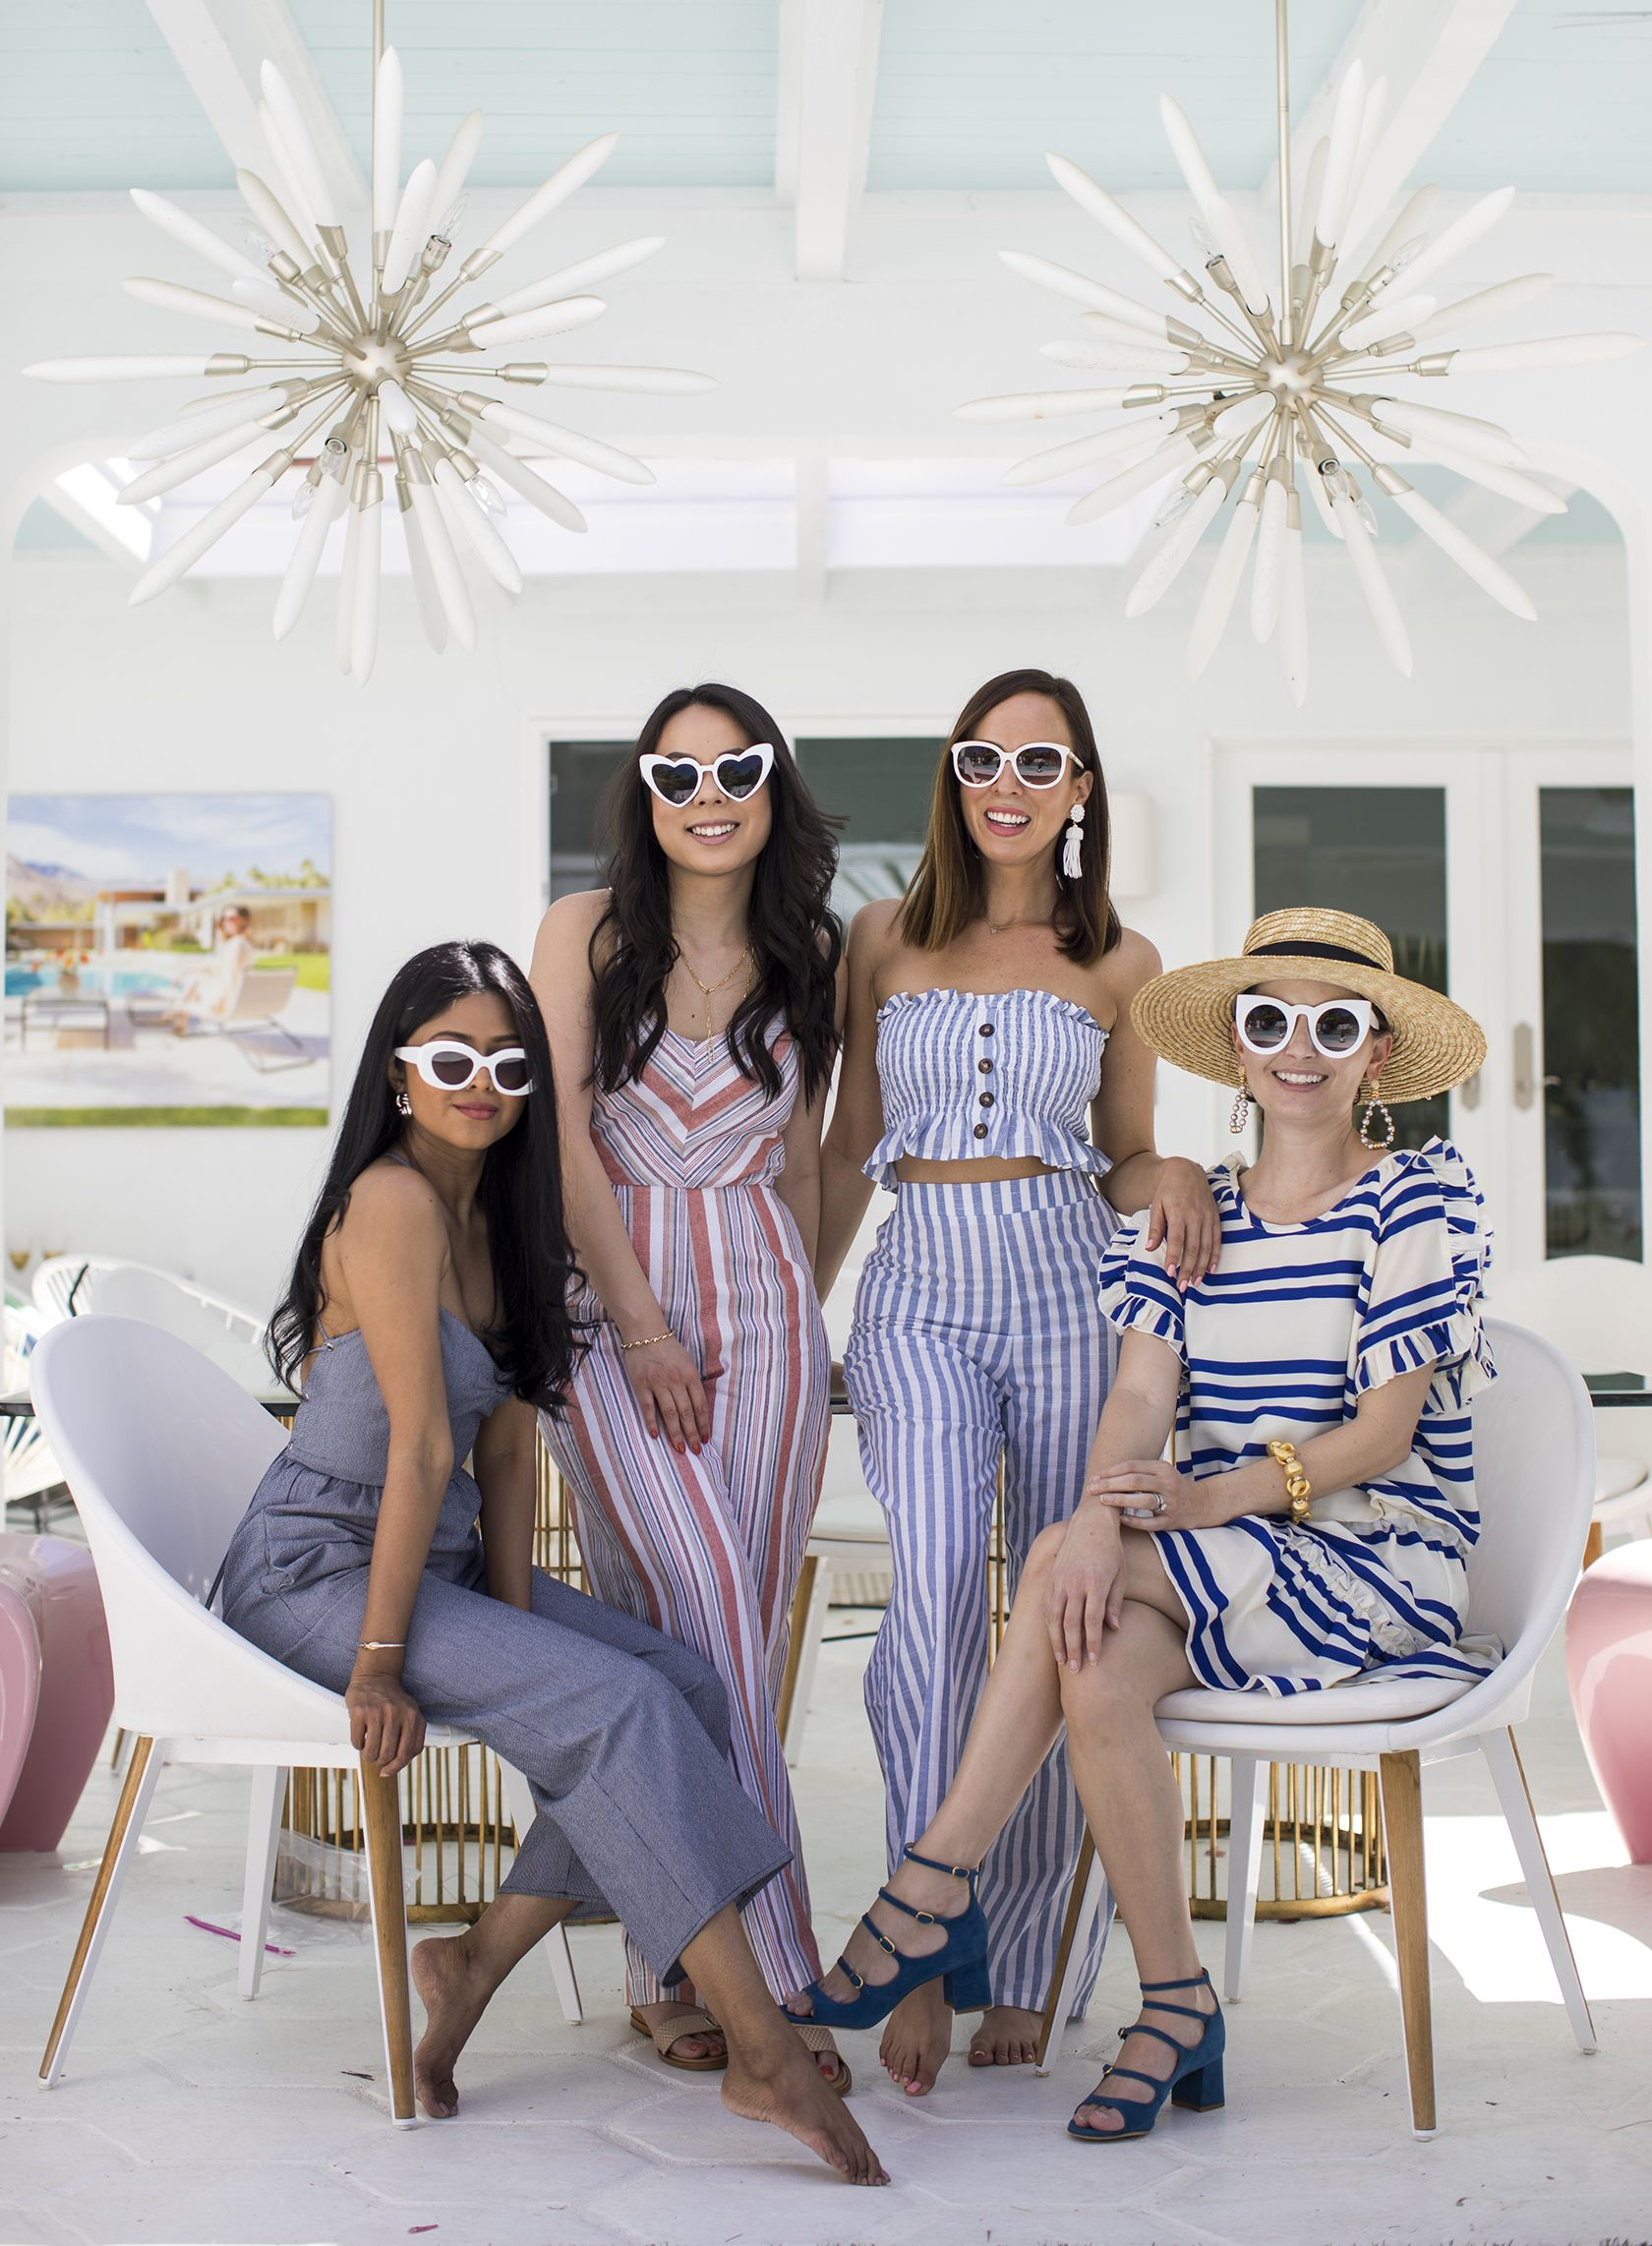 452d85545323 Sydne Style shows palm springs outfit ideas in white sunglasses and stripe  trends  stripes  jumpsuits  friends  sunglasses